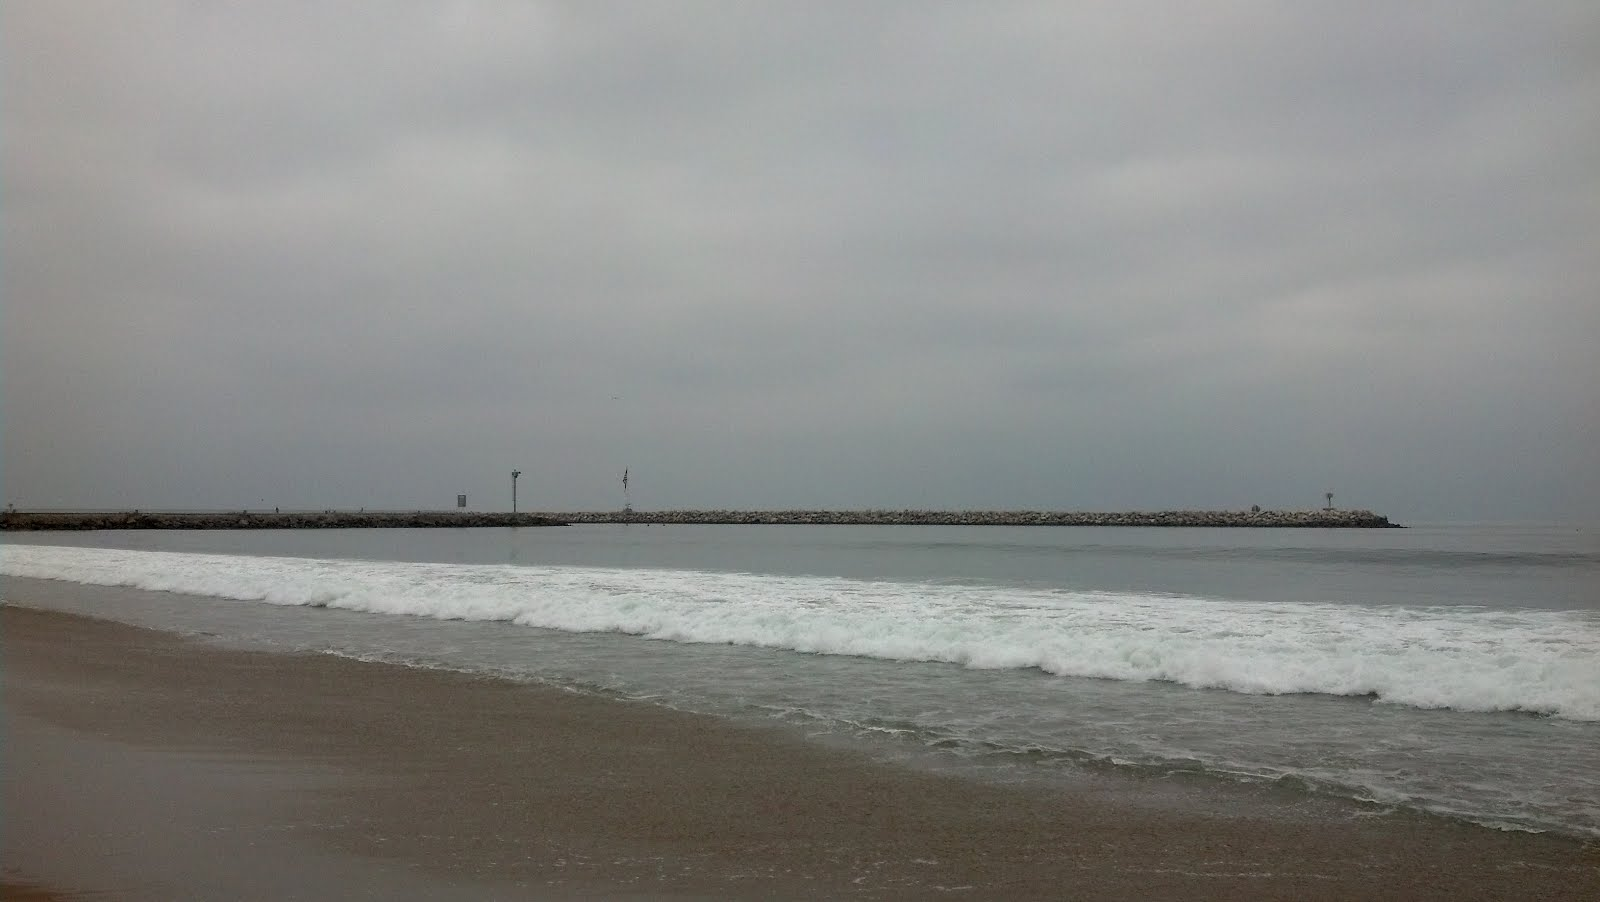 Overcast at the beach, Marina del Rey